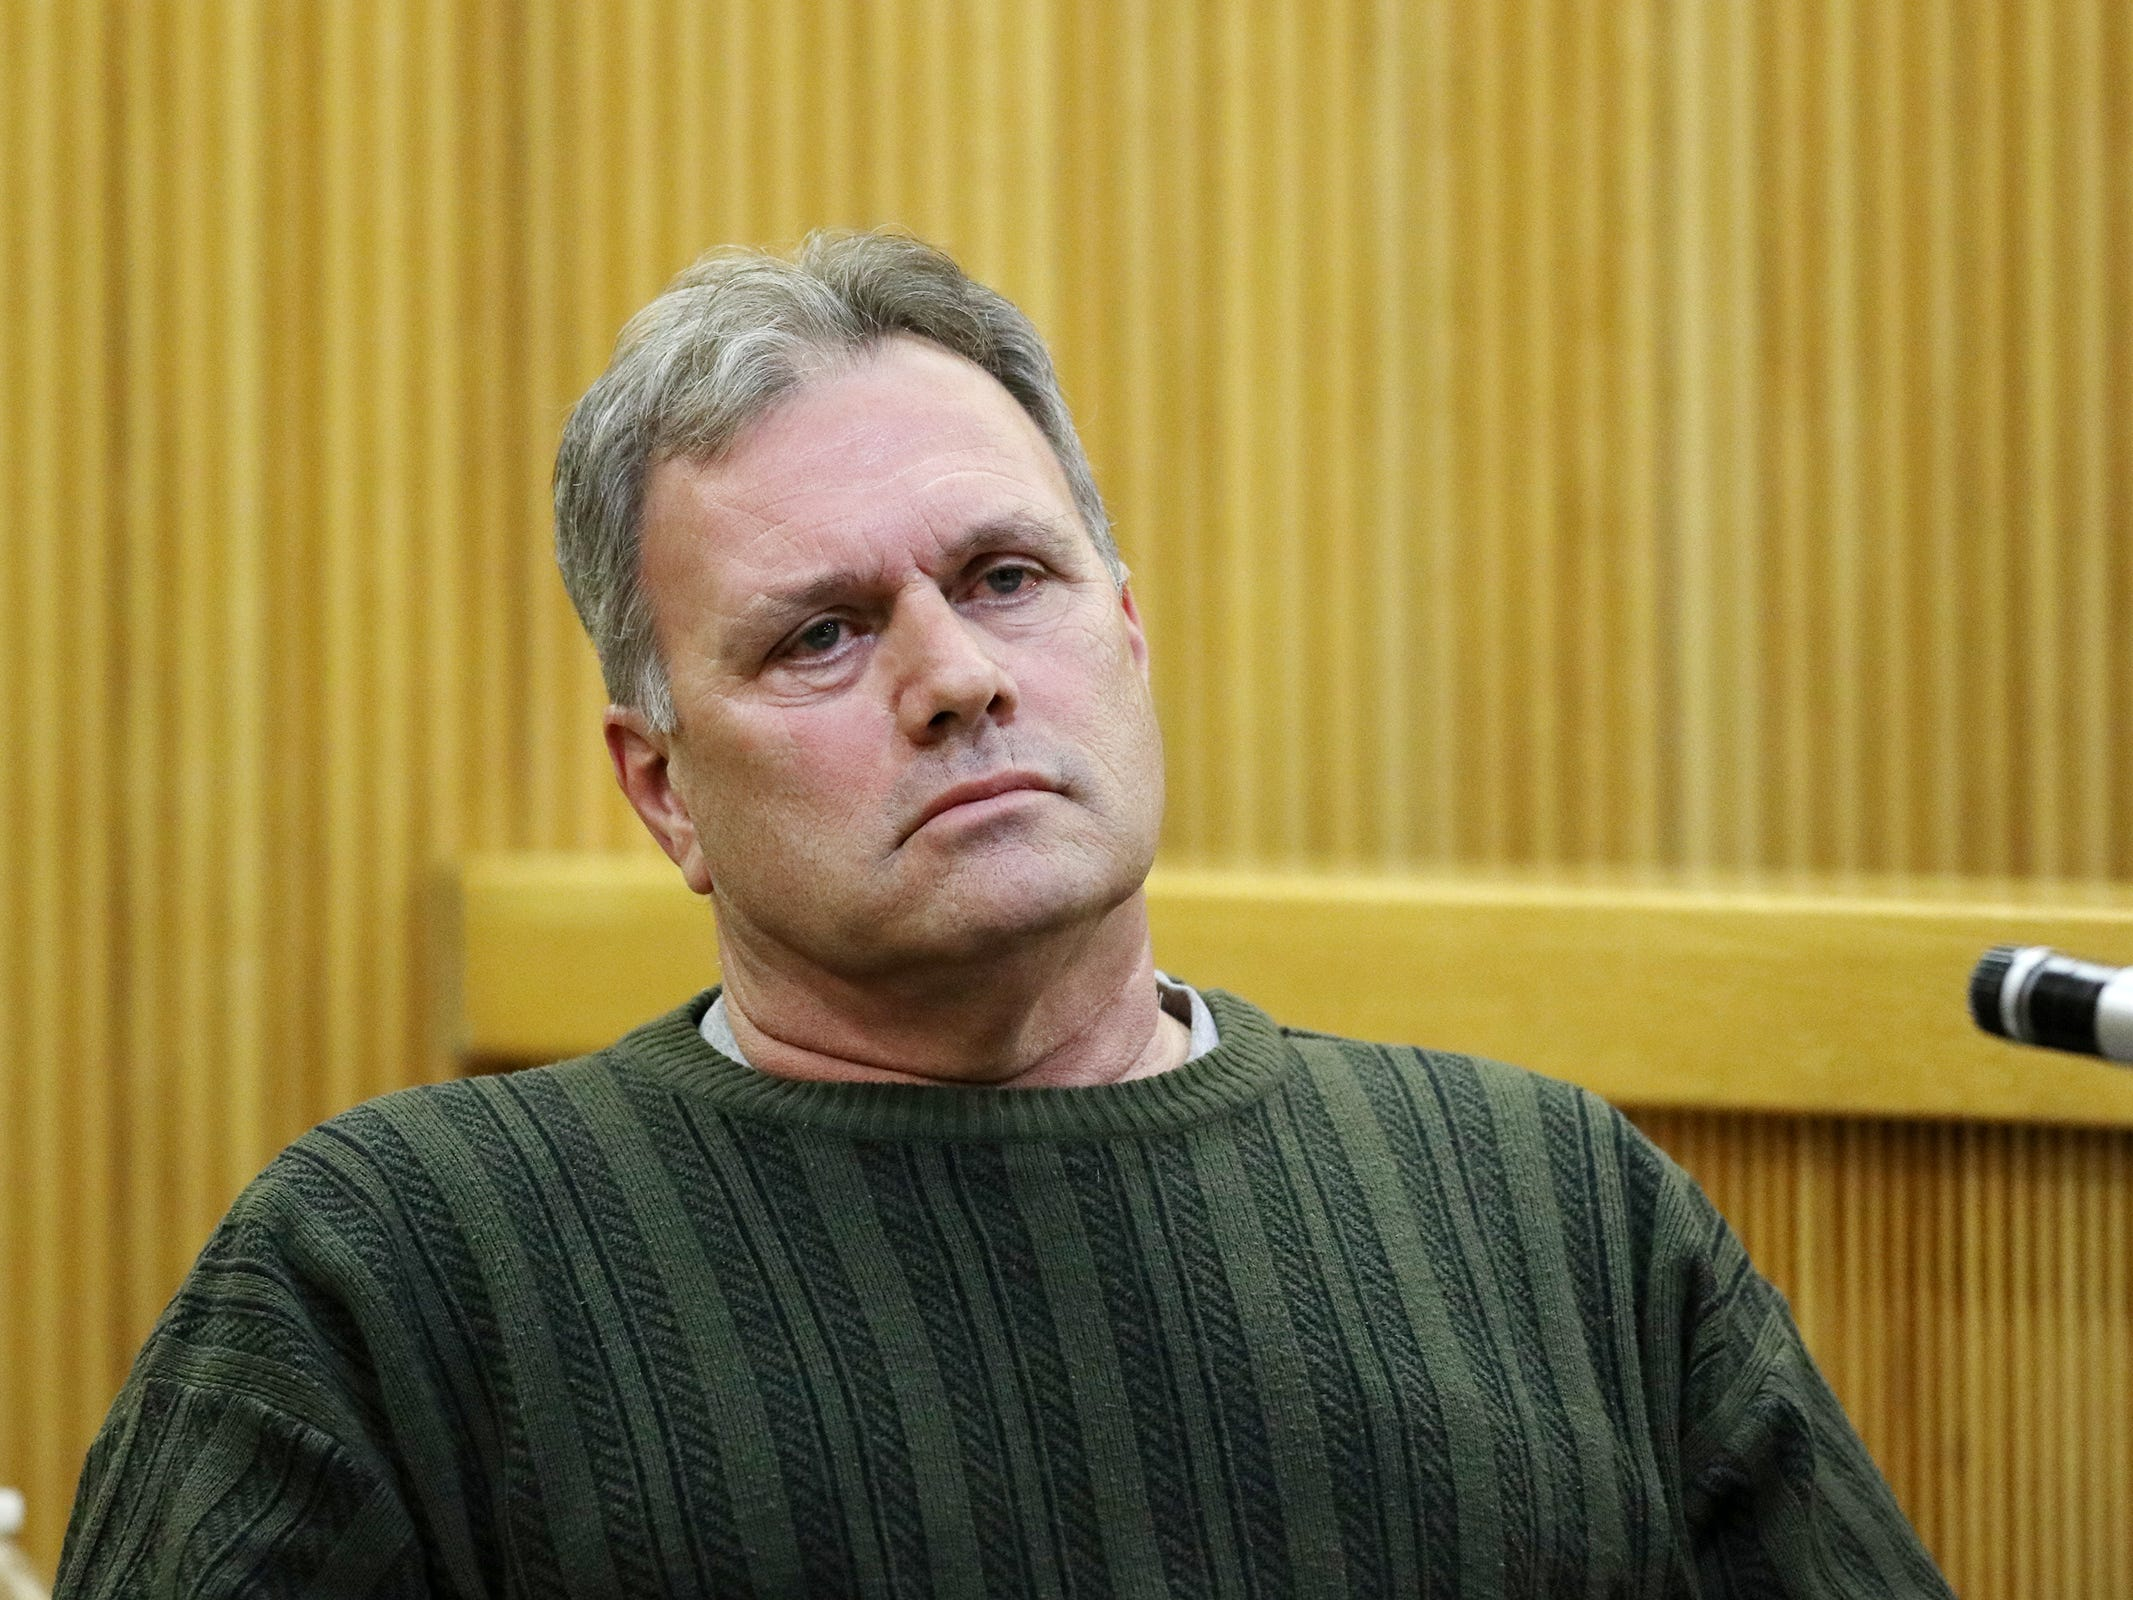 Craig Hetzel of Neptune testifies that he saw a woman who resembled Sarah Stern on the day she went missing during the trial of Liam McAtasney, who is charged with the murder of former high school classmate, Sarah Stern, before Superior Court Judge Richard W. English at the Monmouth County Courthouse in Freehold, NJ Wednesday, February 20, 2019.